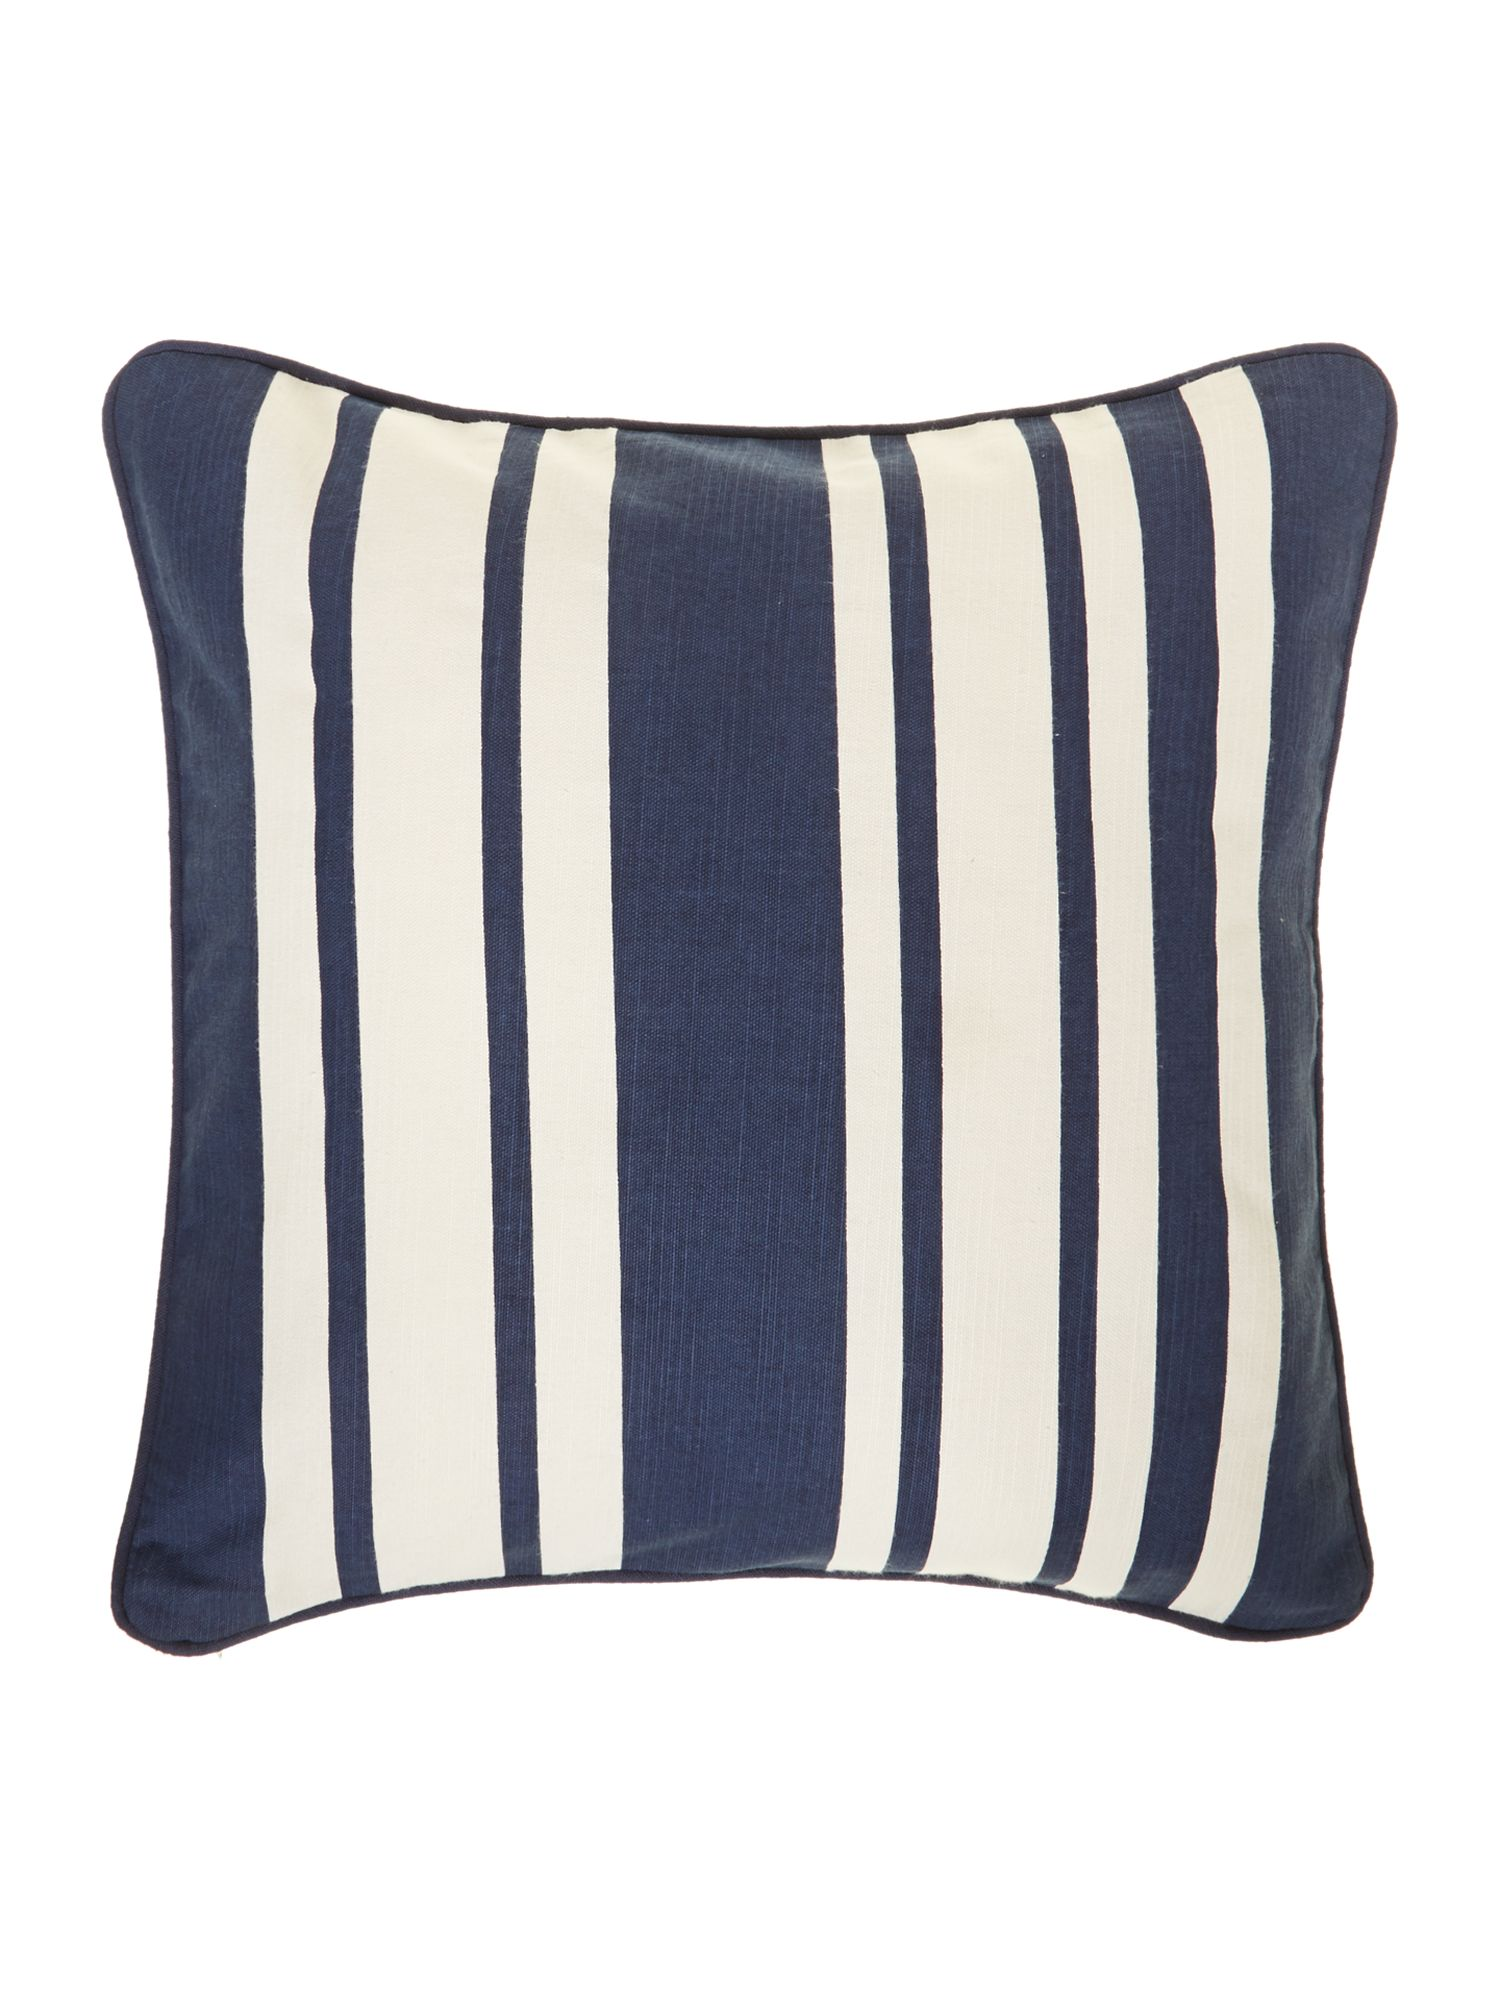 Stripe cotton cushion, Navy blue